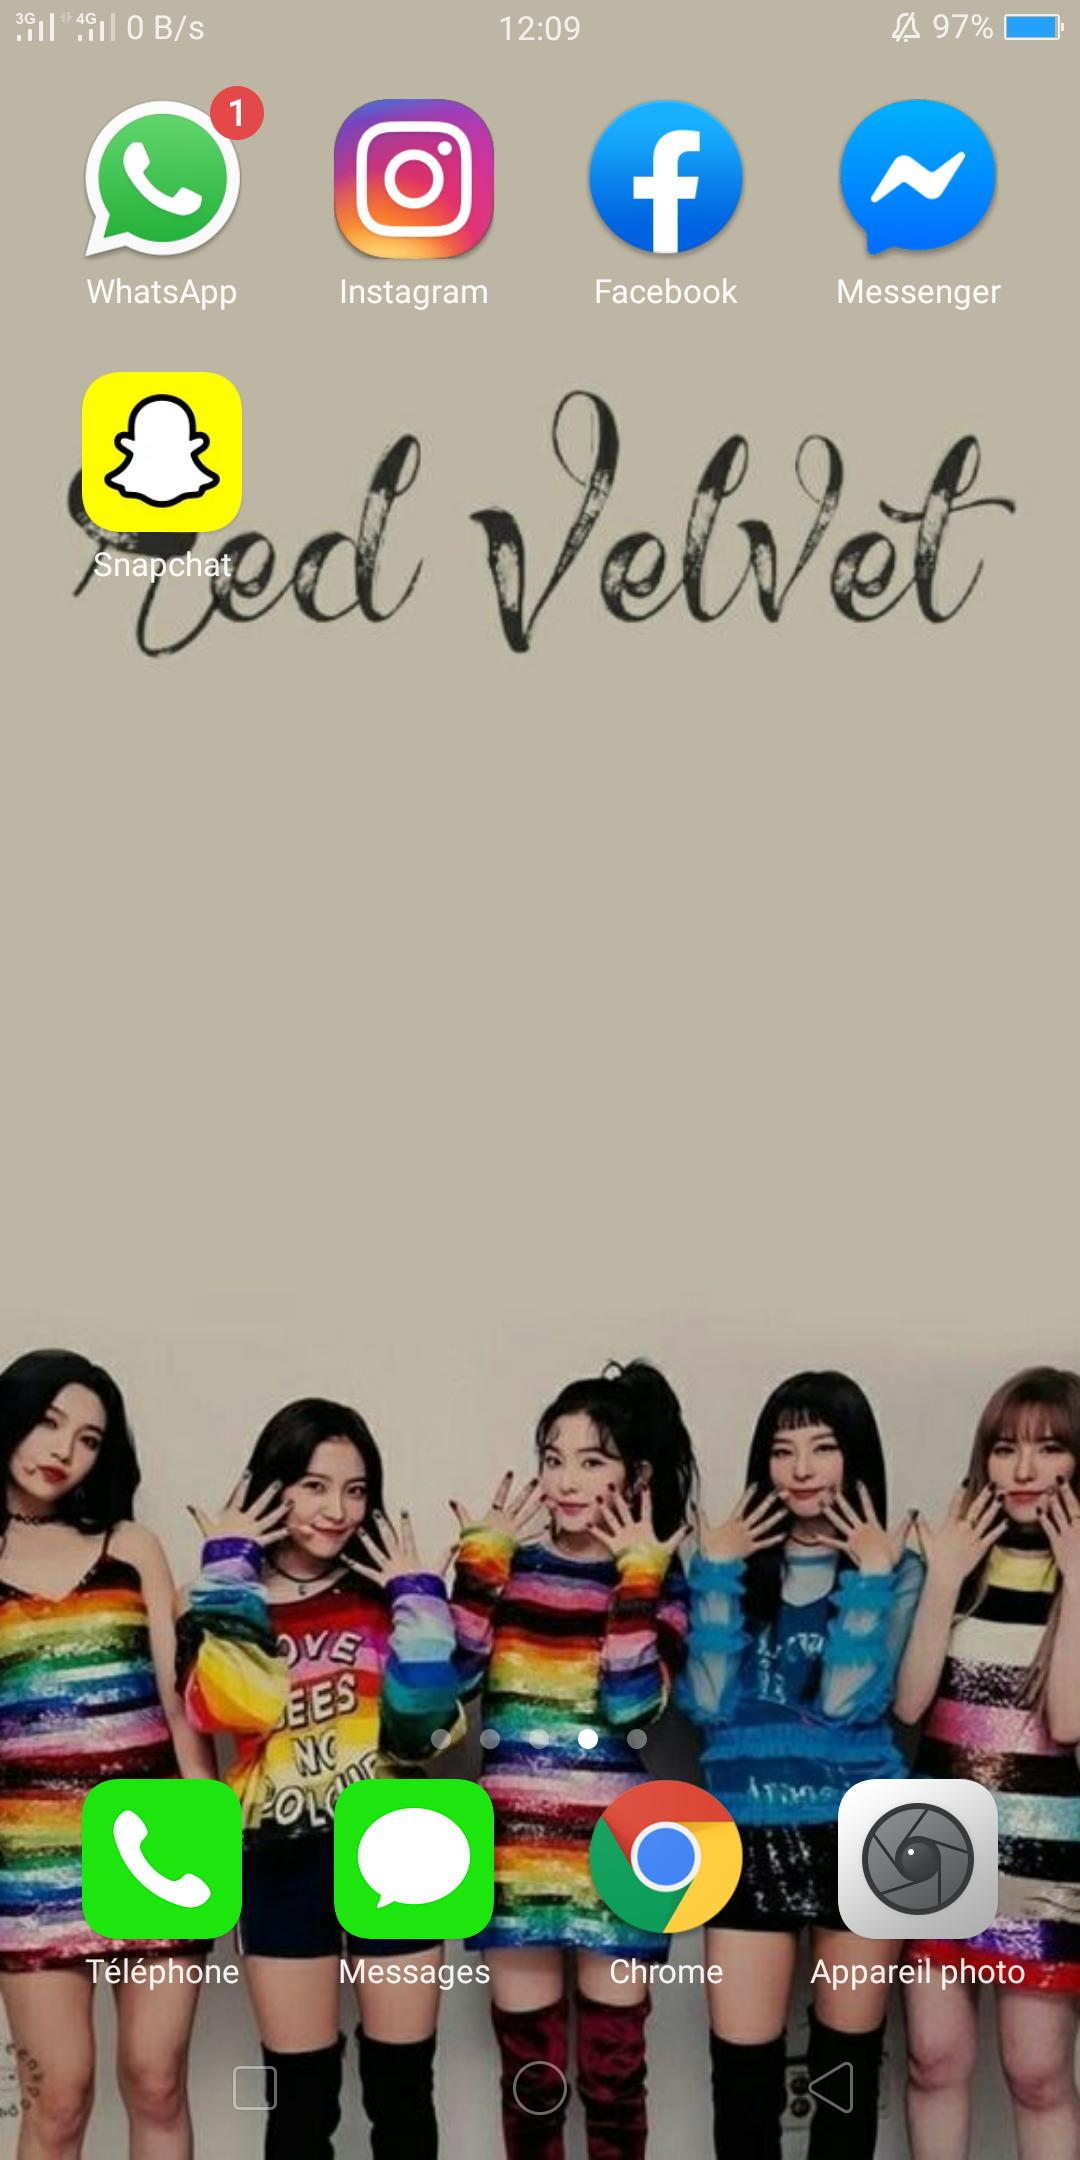 Red Velvet Kpop Wallpapers 4k For Android Apk Download